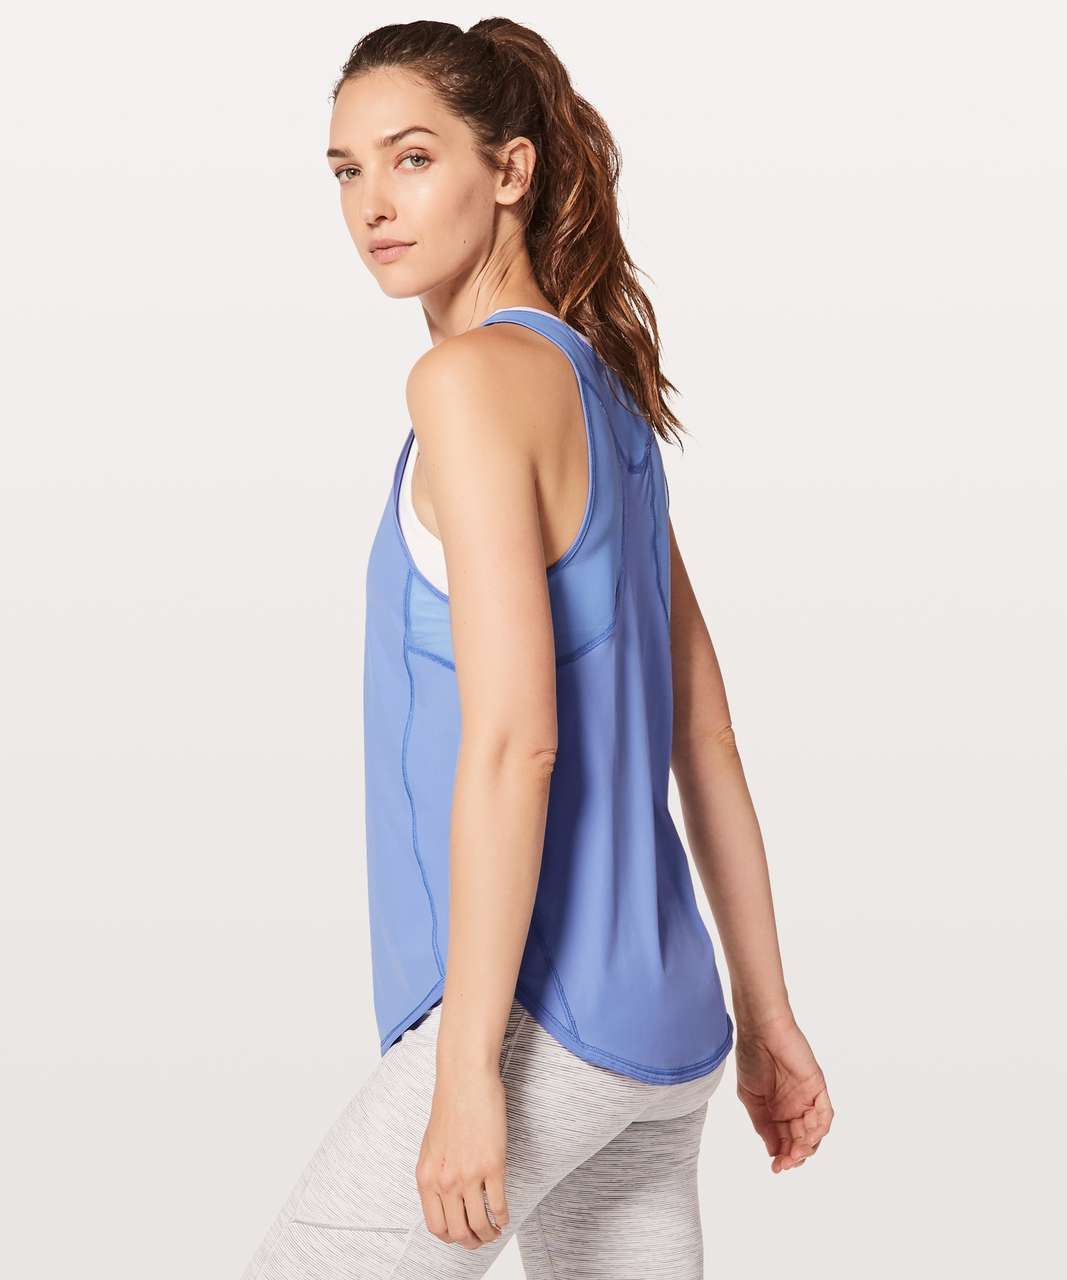 Lululemon Sculpt Tank II - Light Horizon